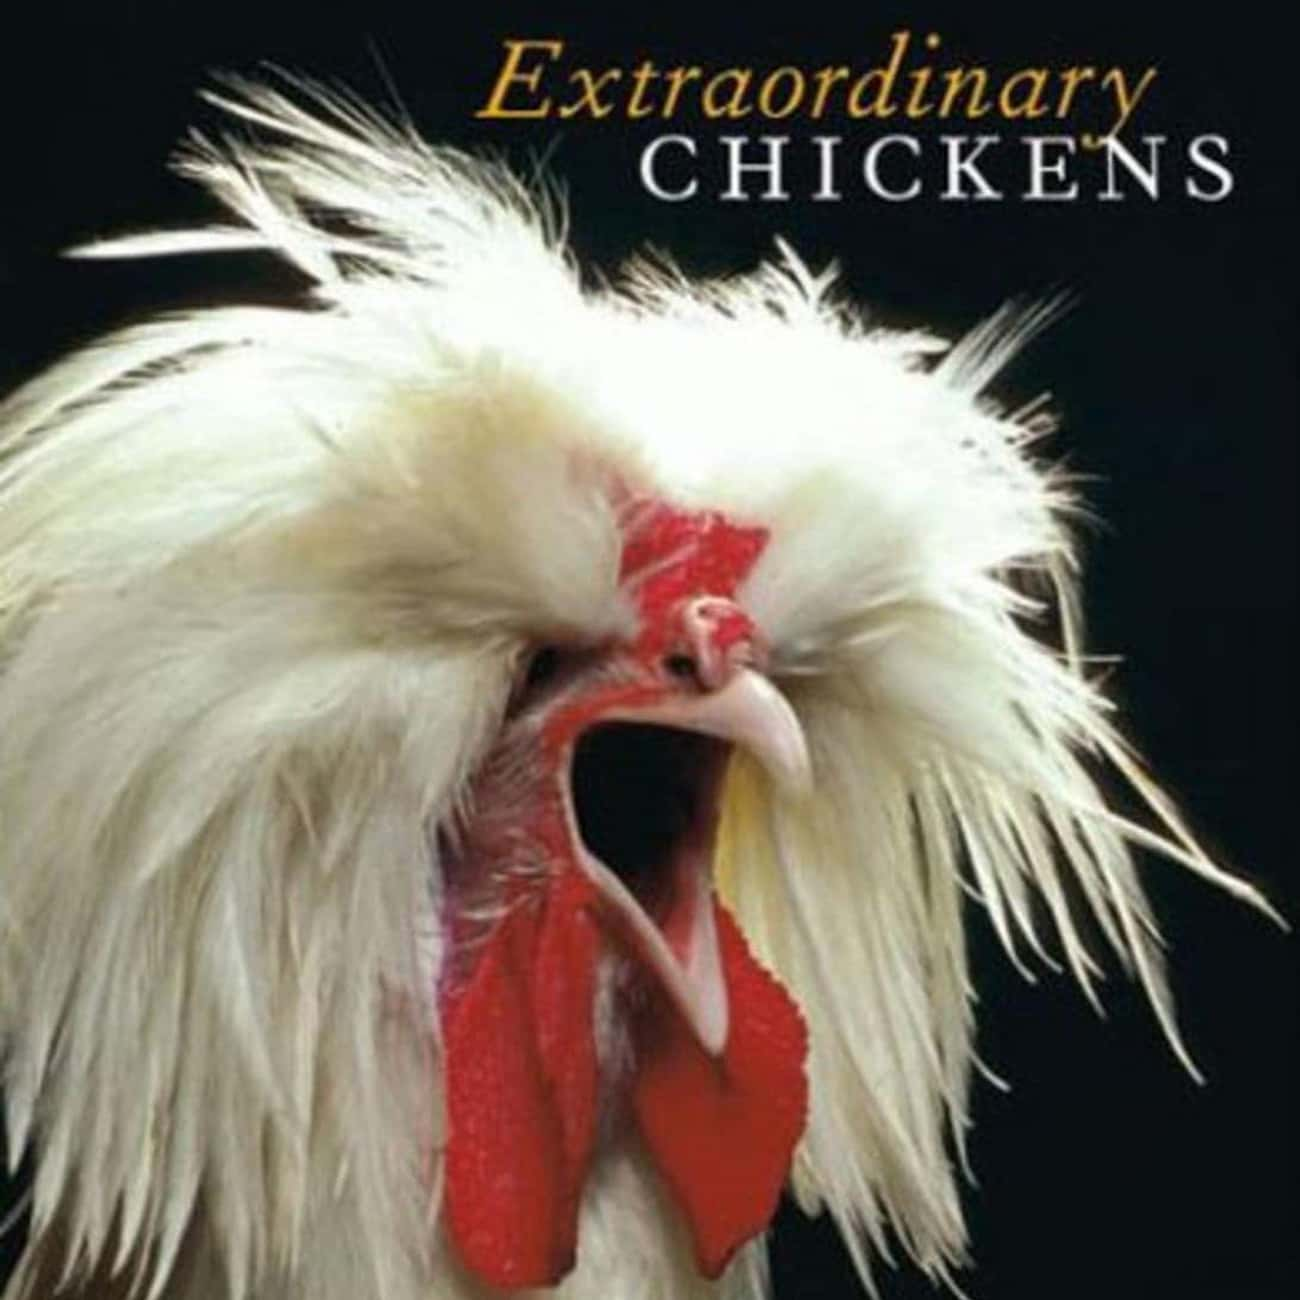 Extraordinary Chickens is listed (or ranked) 2 on the list The Funniest Coffee Table Books Money Can Buy